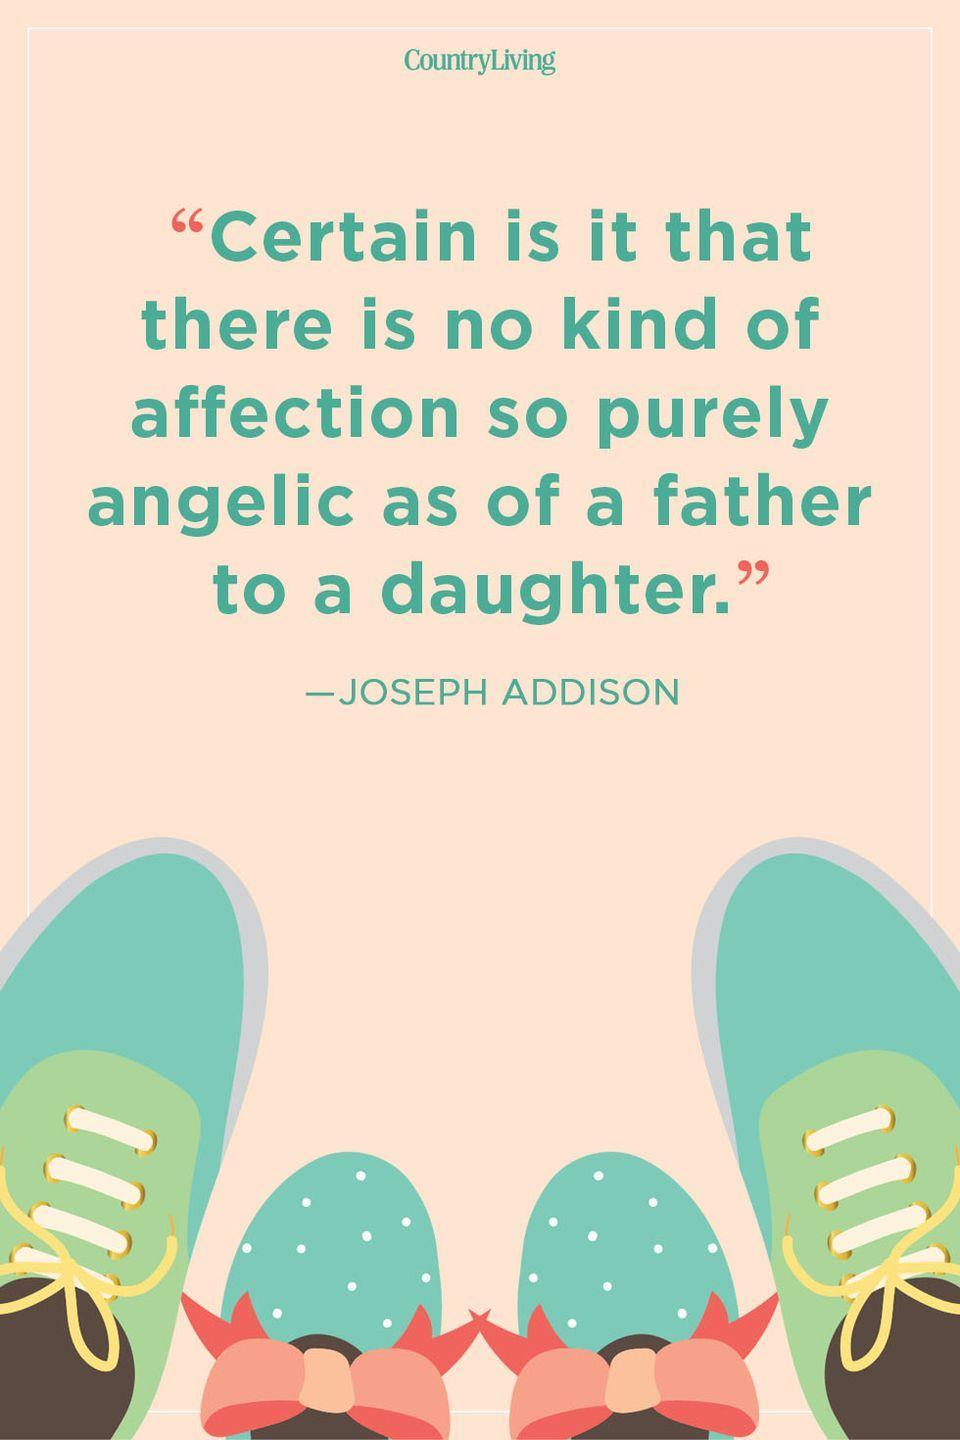 "<p>""Certain is it that there is no kind of affection so purely angelic as of a father to a daughter.""</p>"